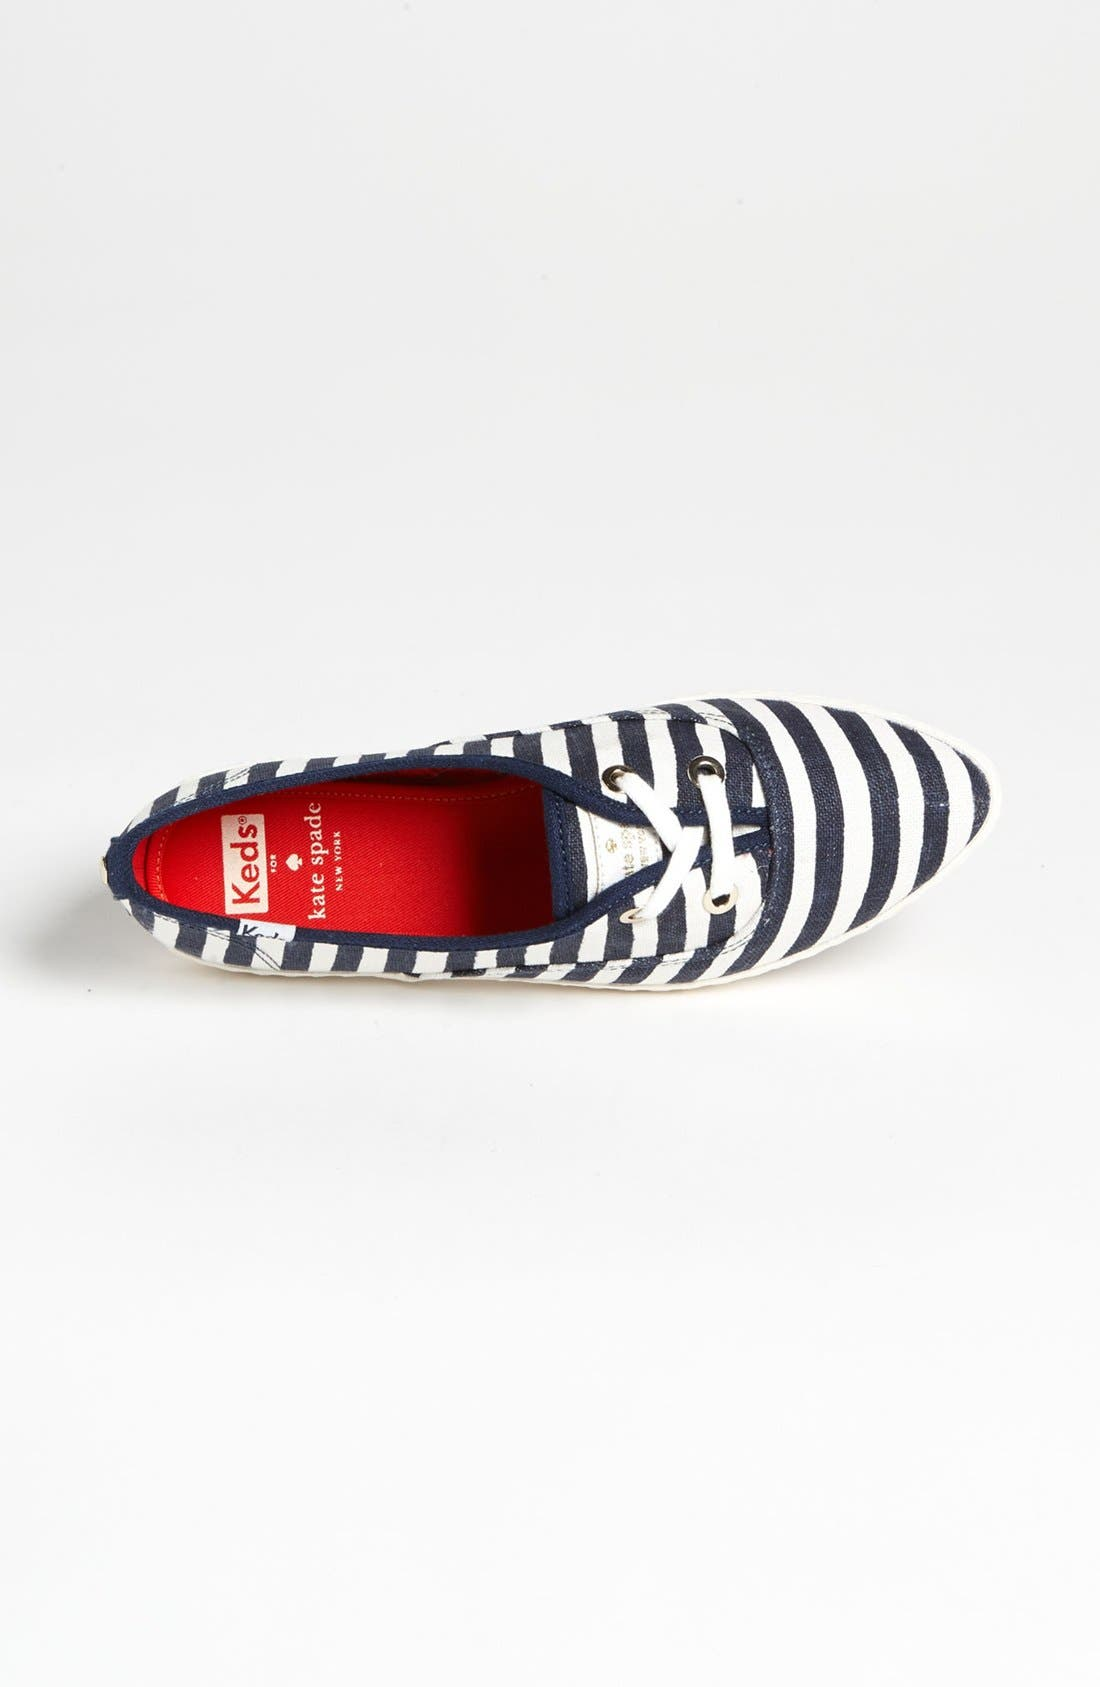 ,                             Keds<sup>®</sup> for kate spade new york 'pointer' sneaker,                             Alternate thumbnail 4, color,                             473